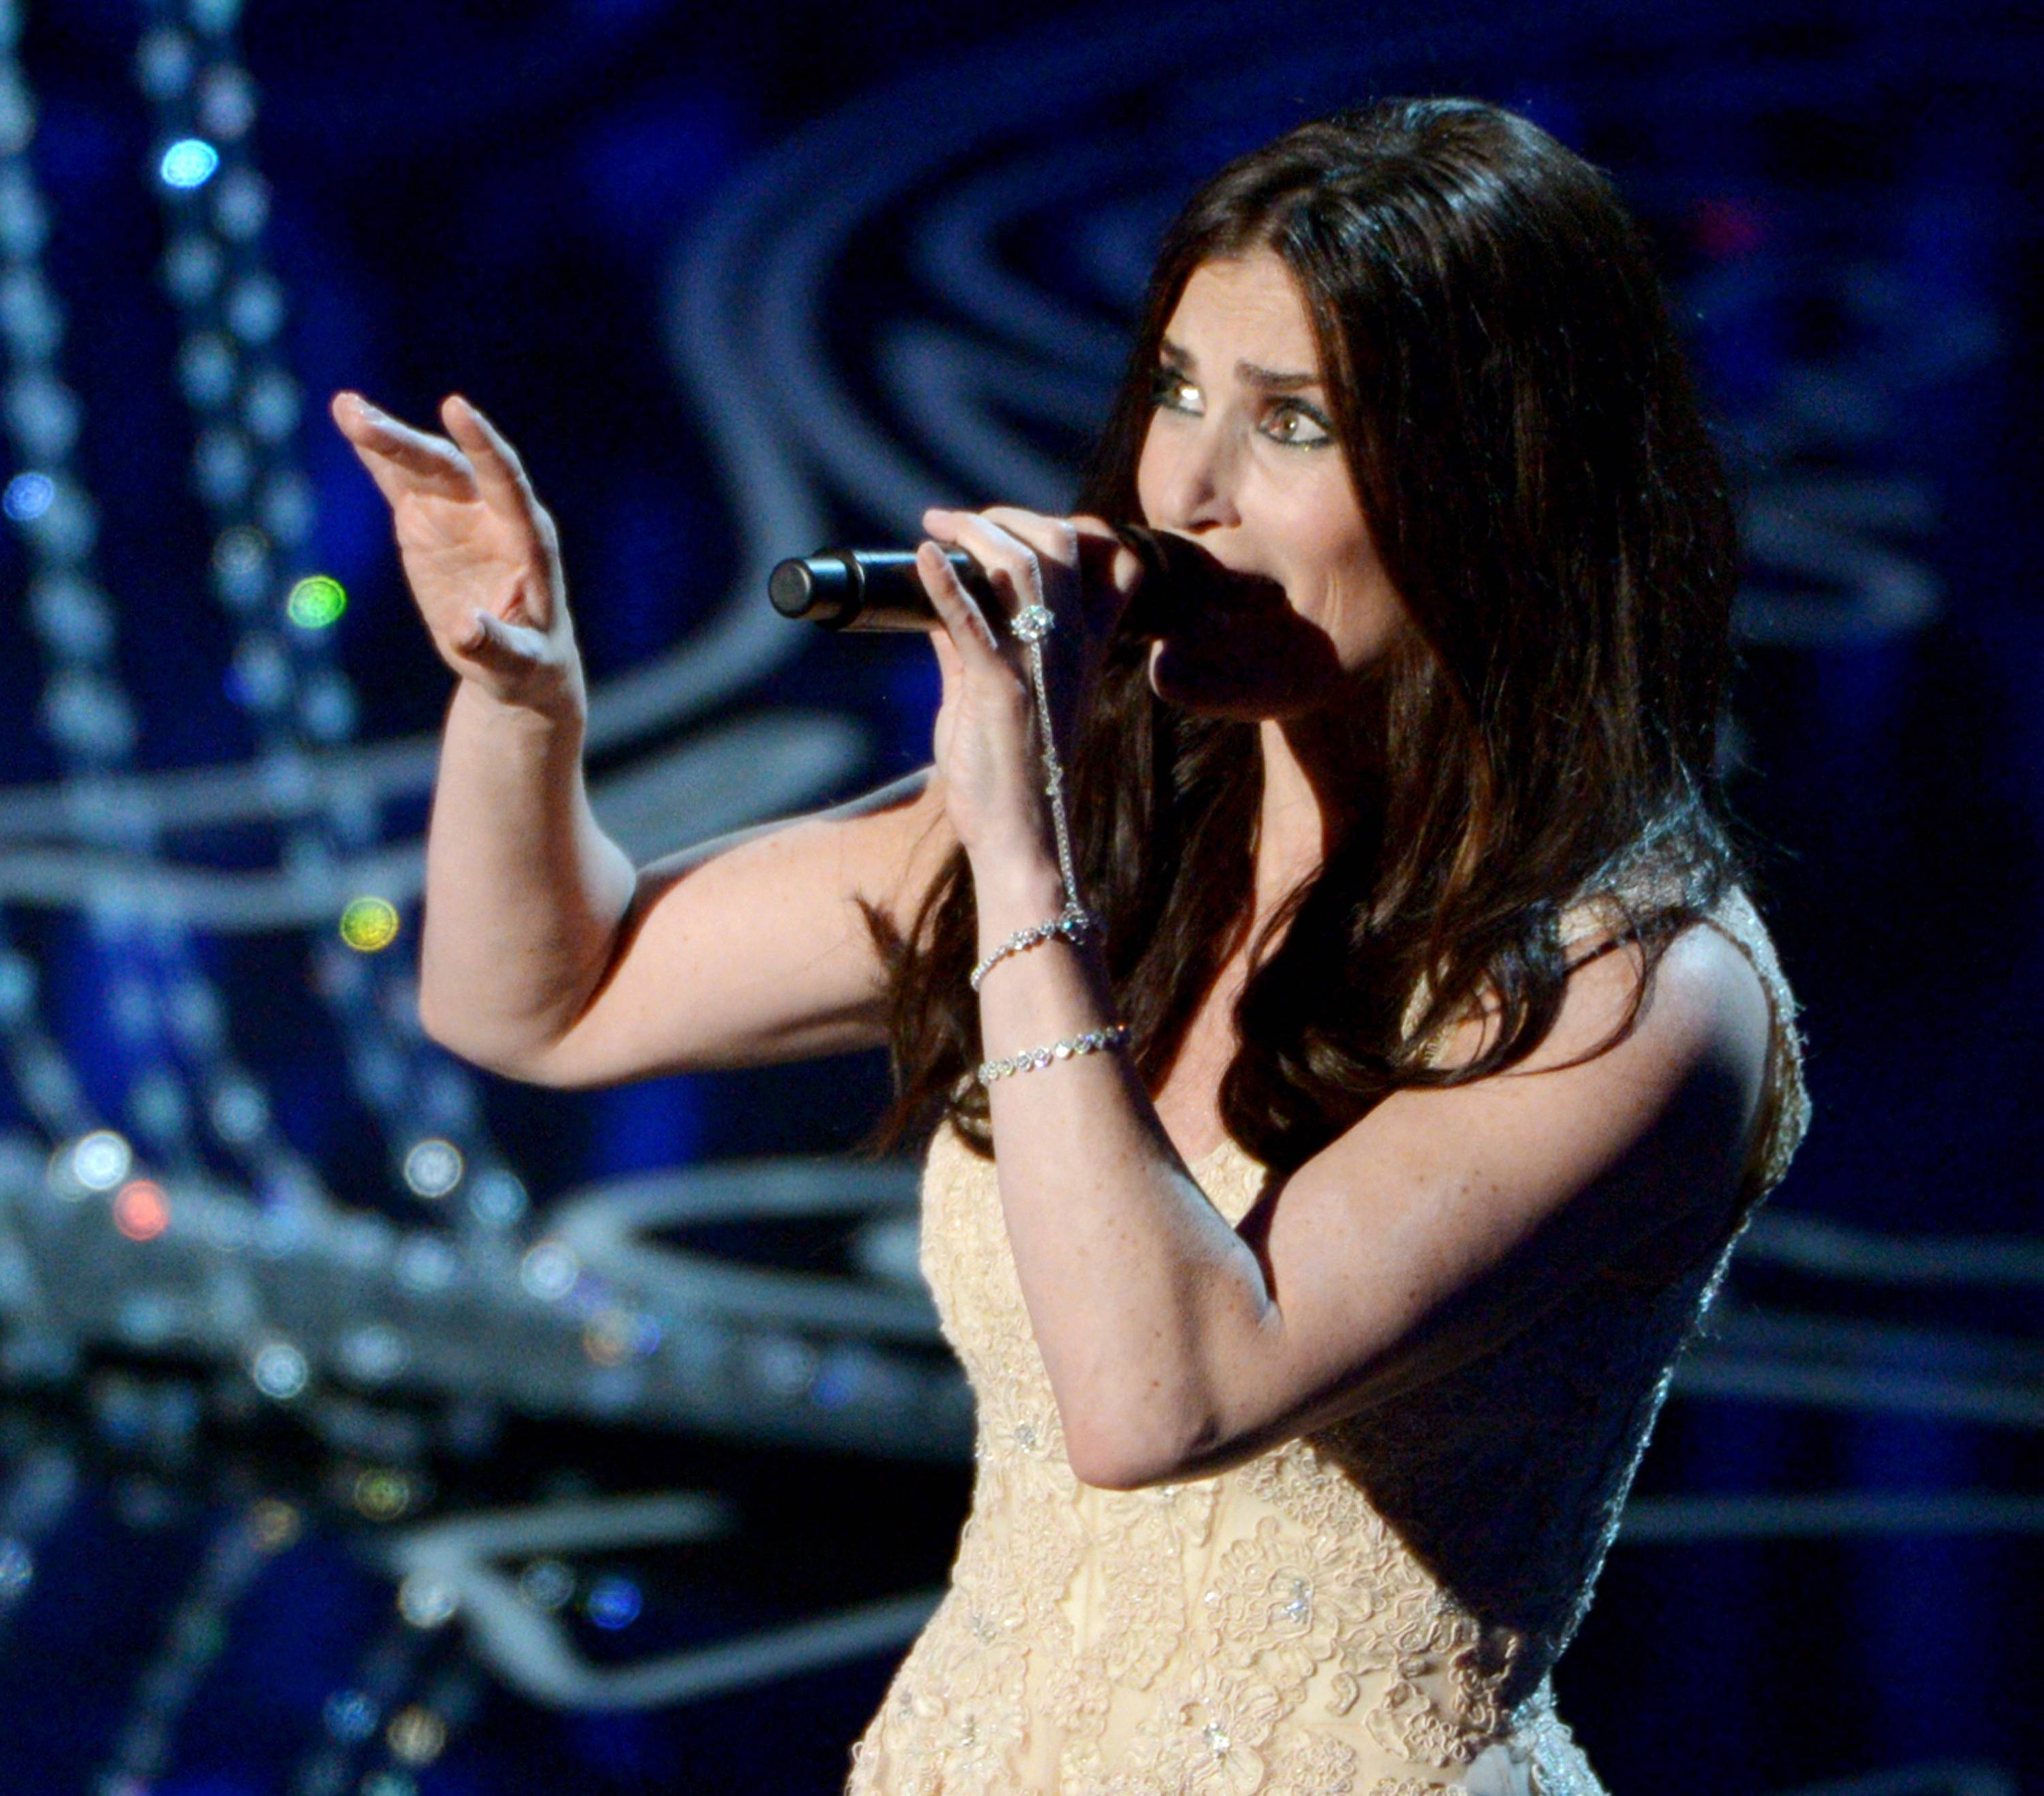 Idina Menzel performs on stage during the Oscars at the Dolby Theatre on Sunday.